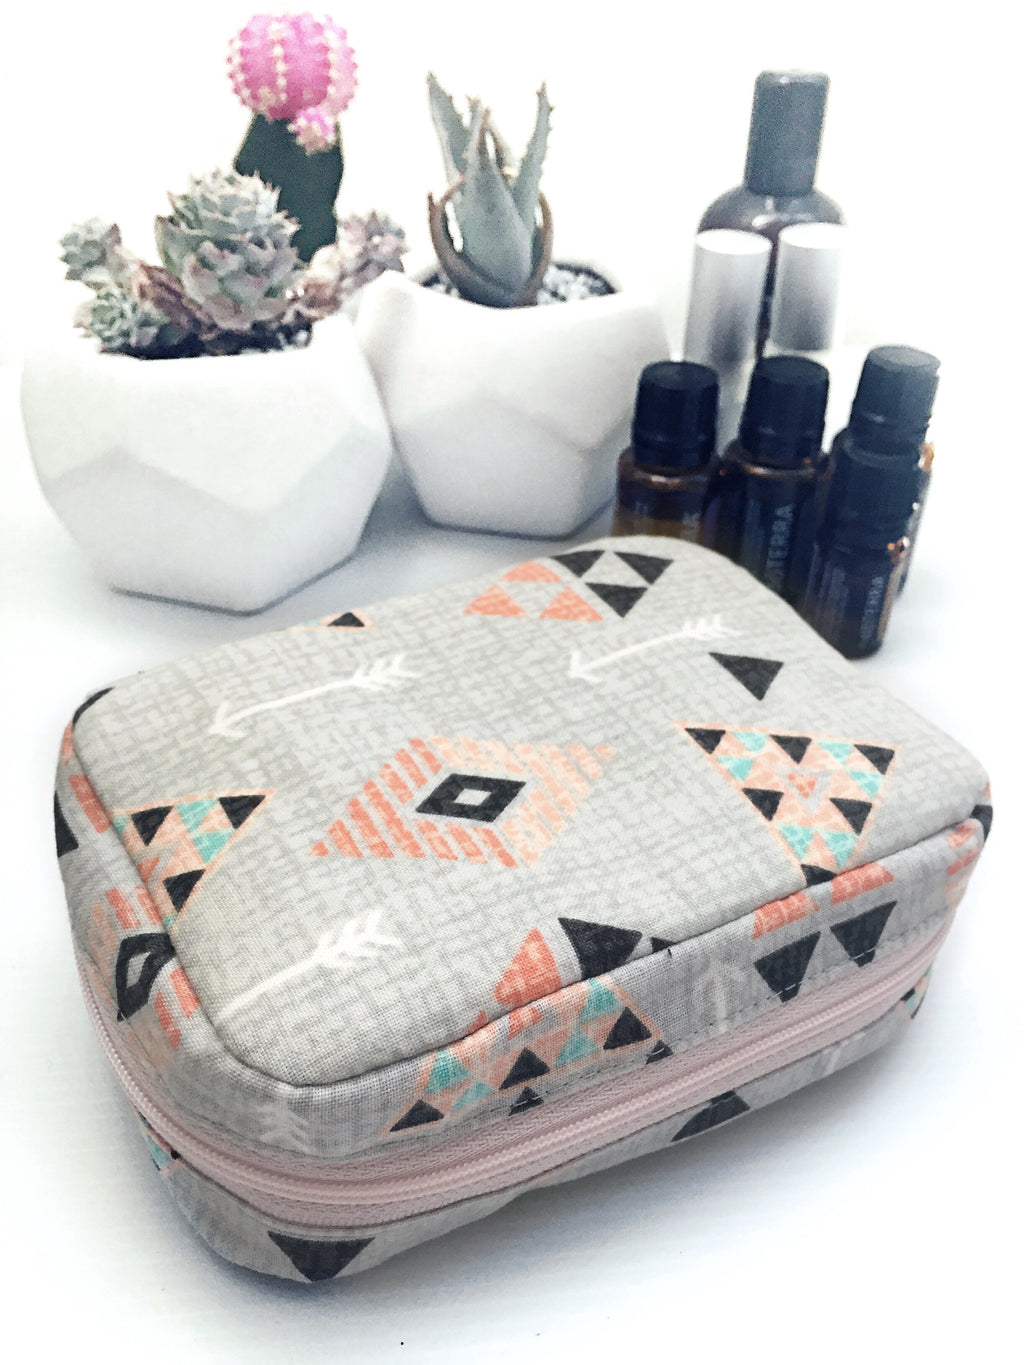 On the Go Essential Oils Case